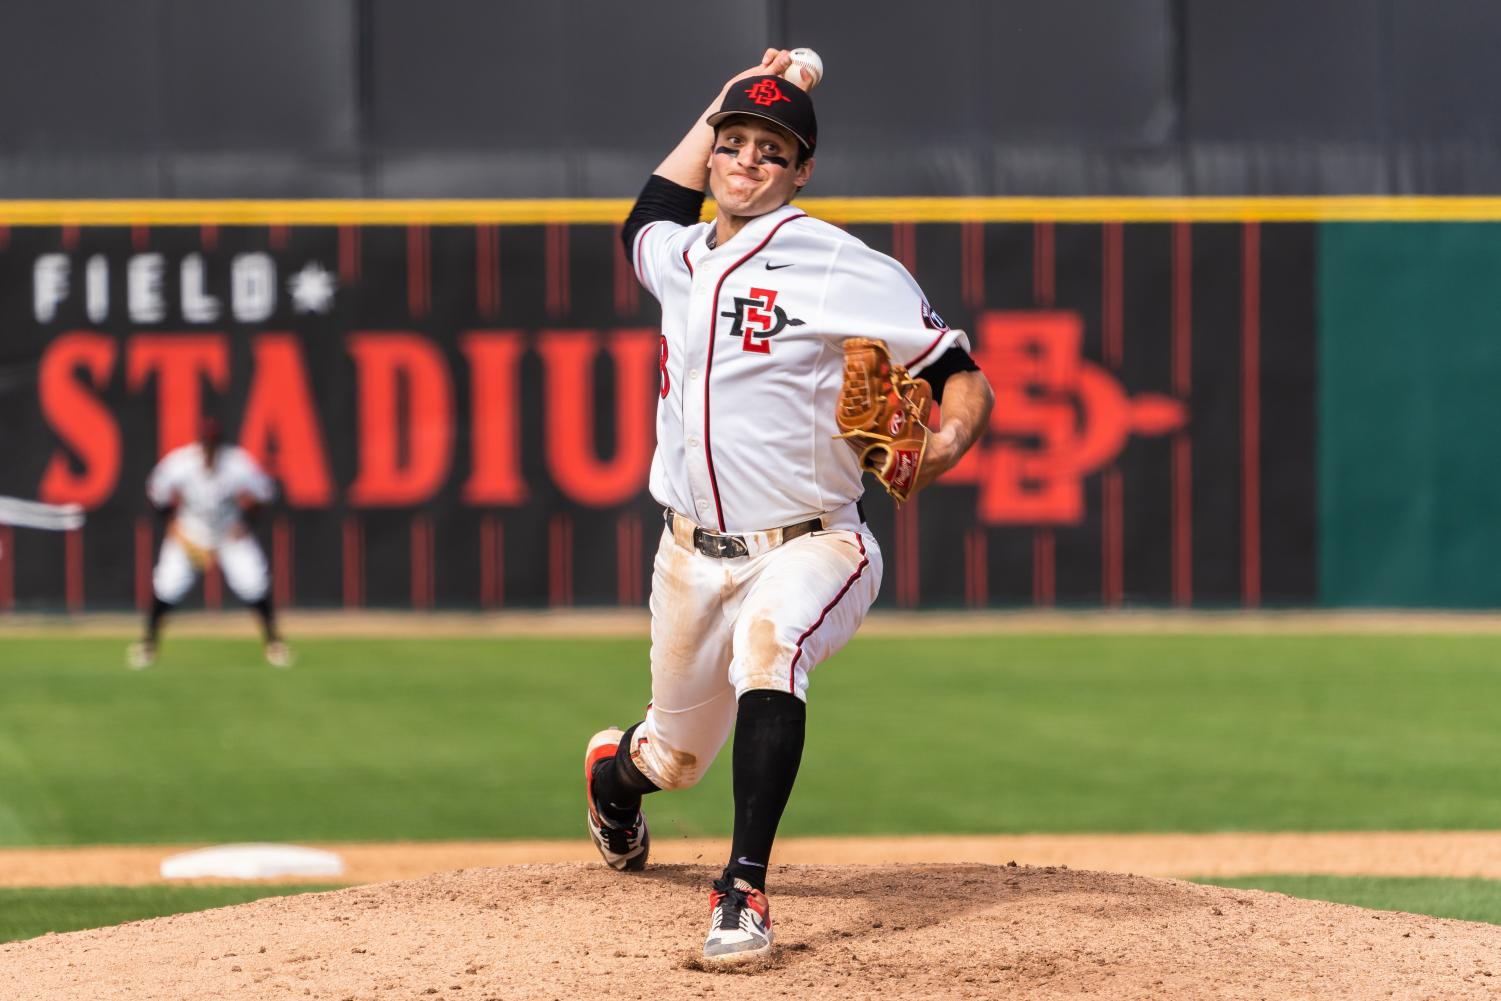 Then-sophomore pitcher Casey Schmitt pitches the Aztecs' 5-4 victory over Air Force on April 20, 2019 at Tony Gwynn Stadium.